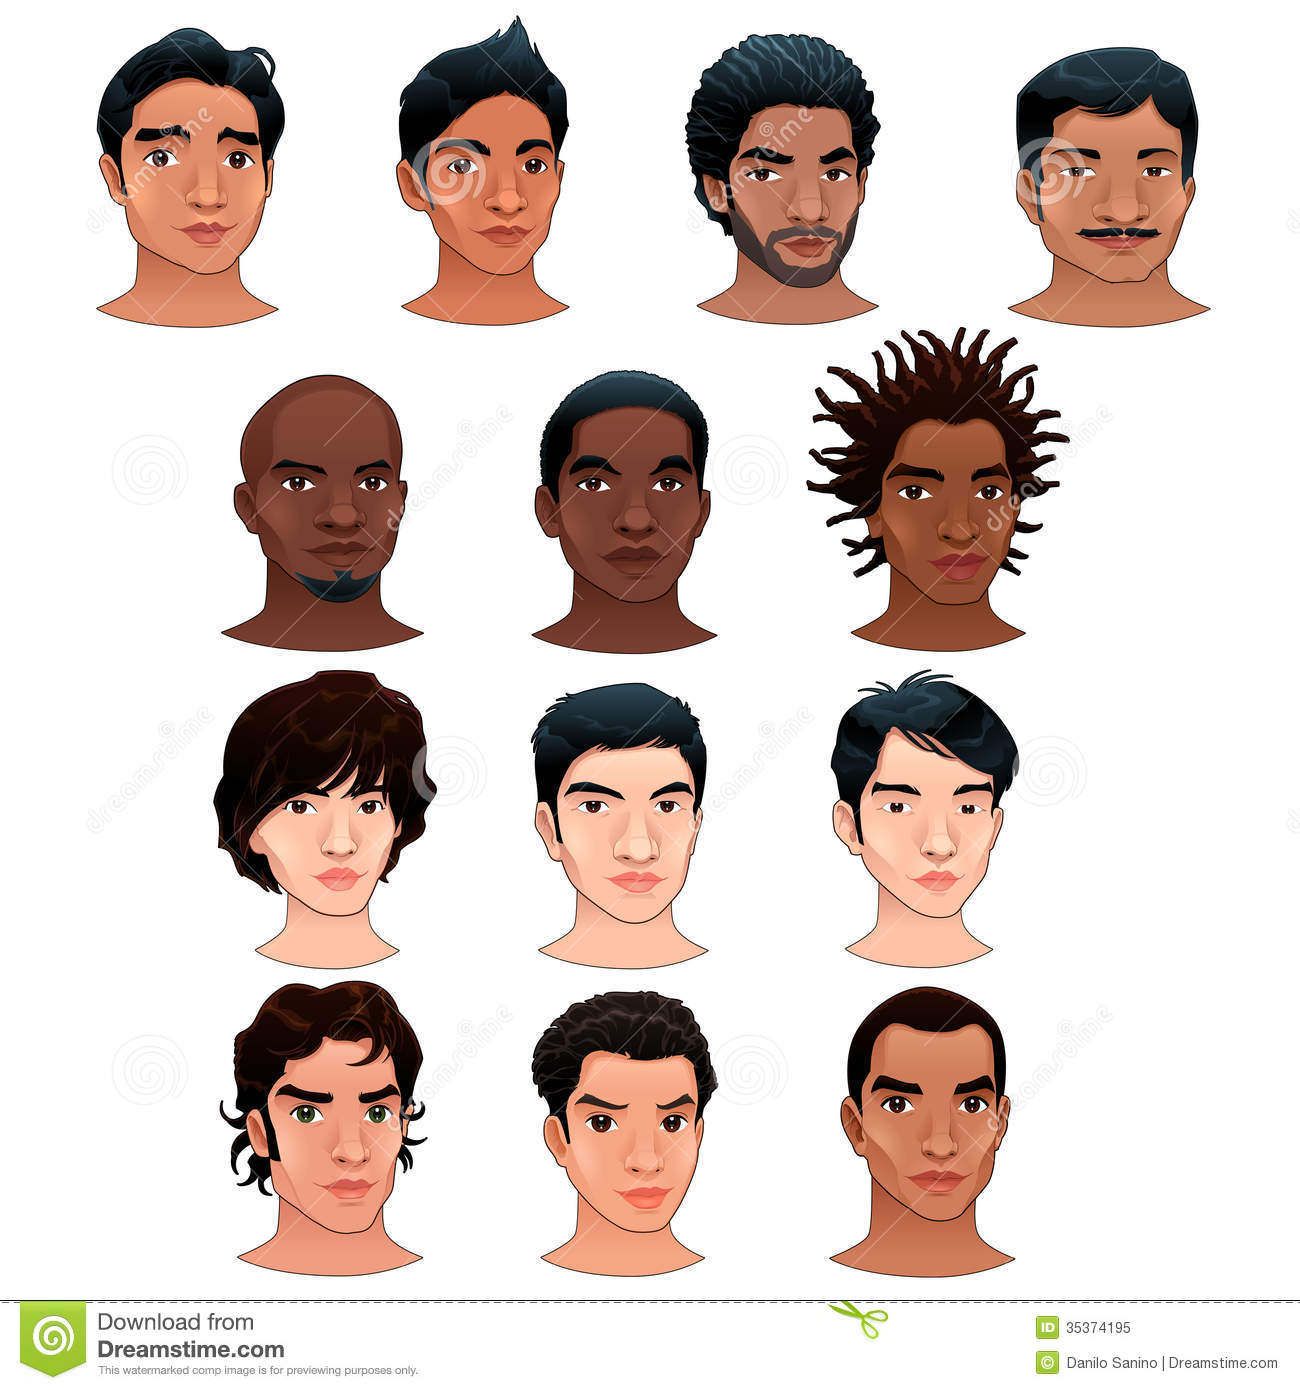 Crowd Of Indian Women Vector Avatars Stock Vector: Indian, Black, Asian And Latino Men. Stock Vector